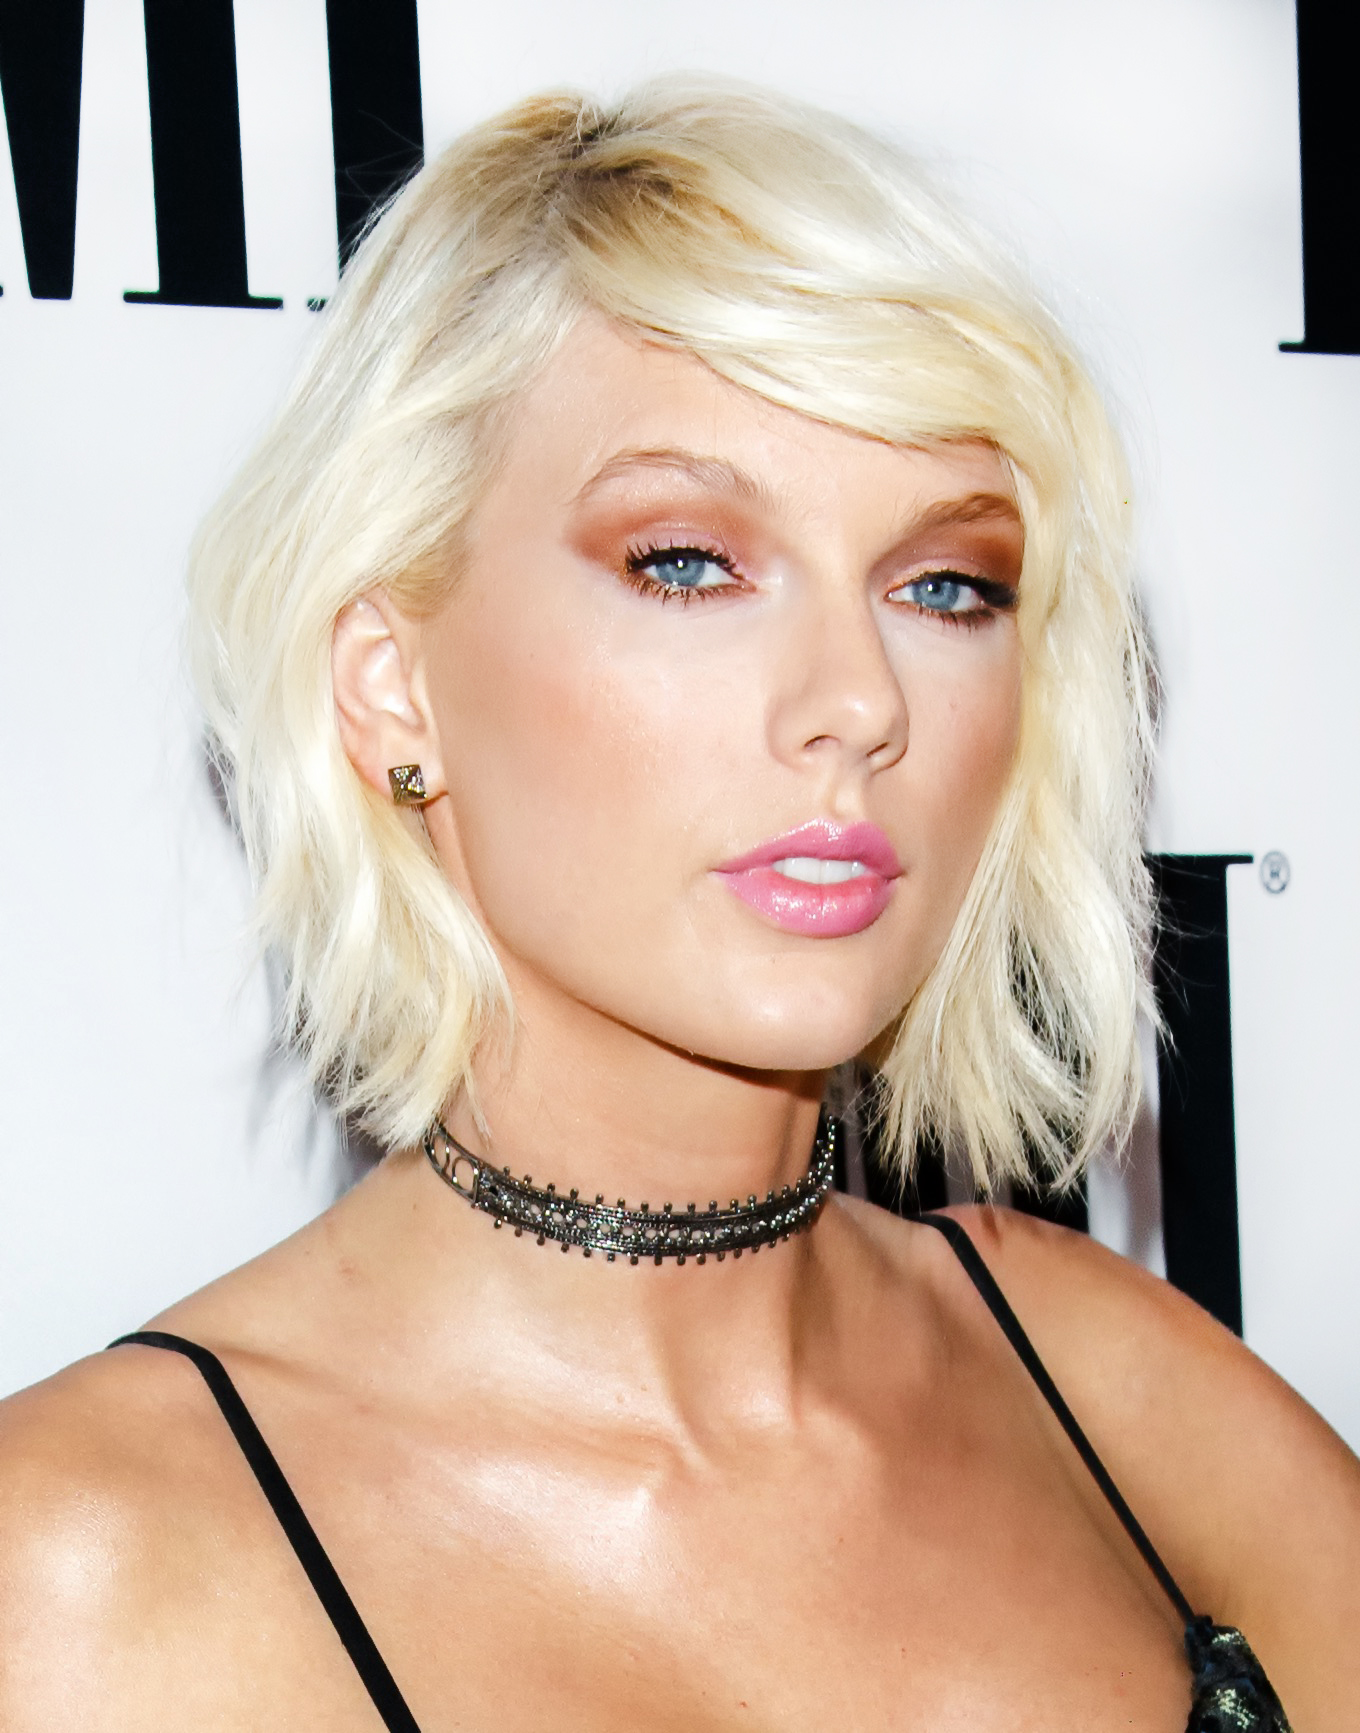 copy taylor swift's sports bra for a cute, affordable summer workout